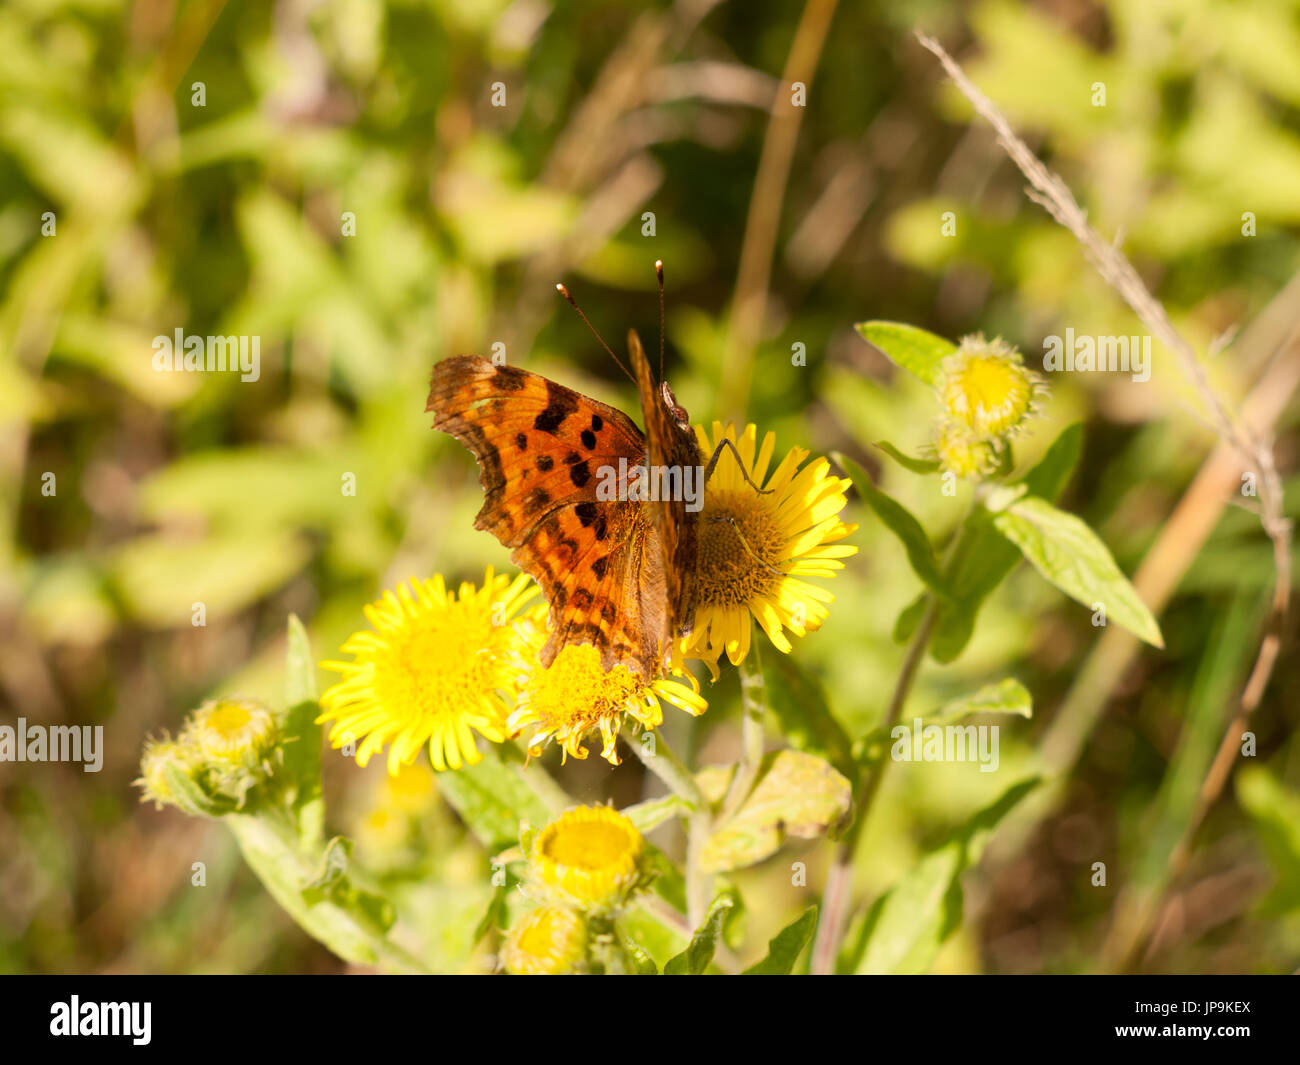 a small comma butterfly resting upon a yellow flower outside; Essex; UK - Stock Image